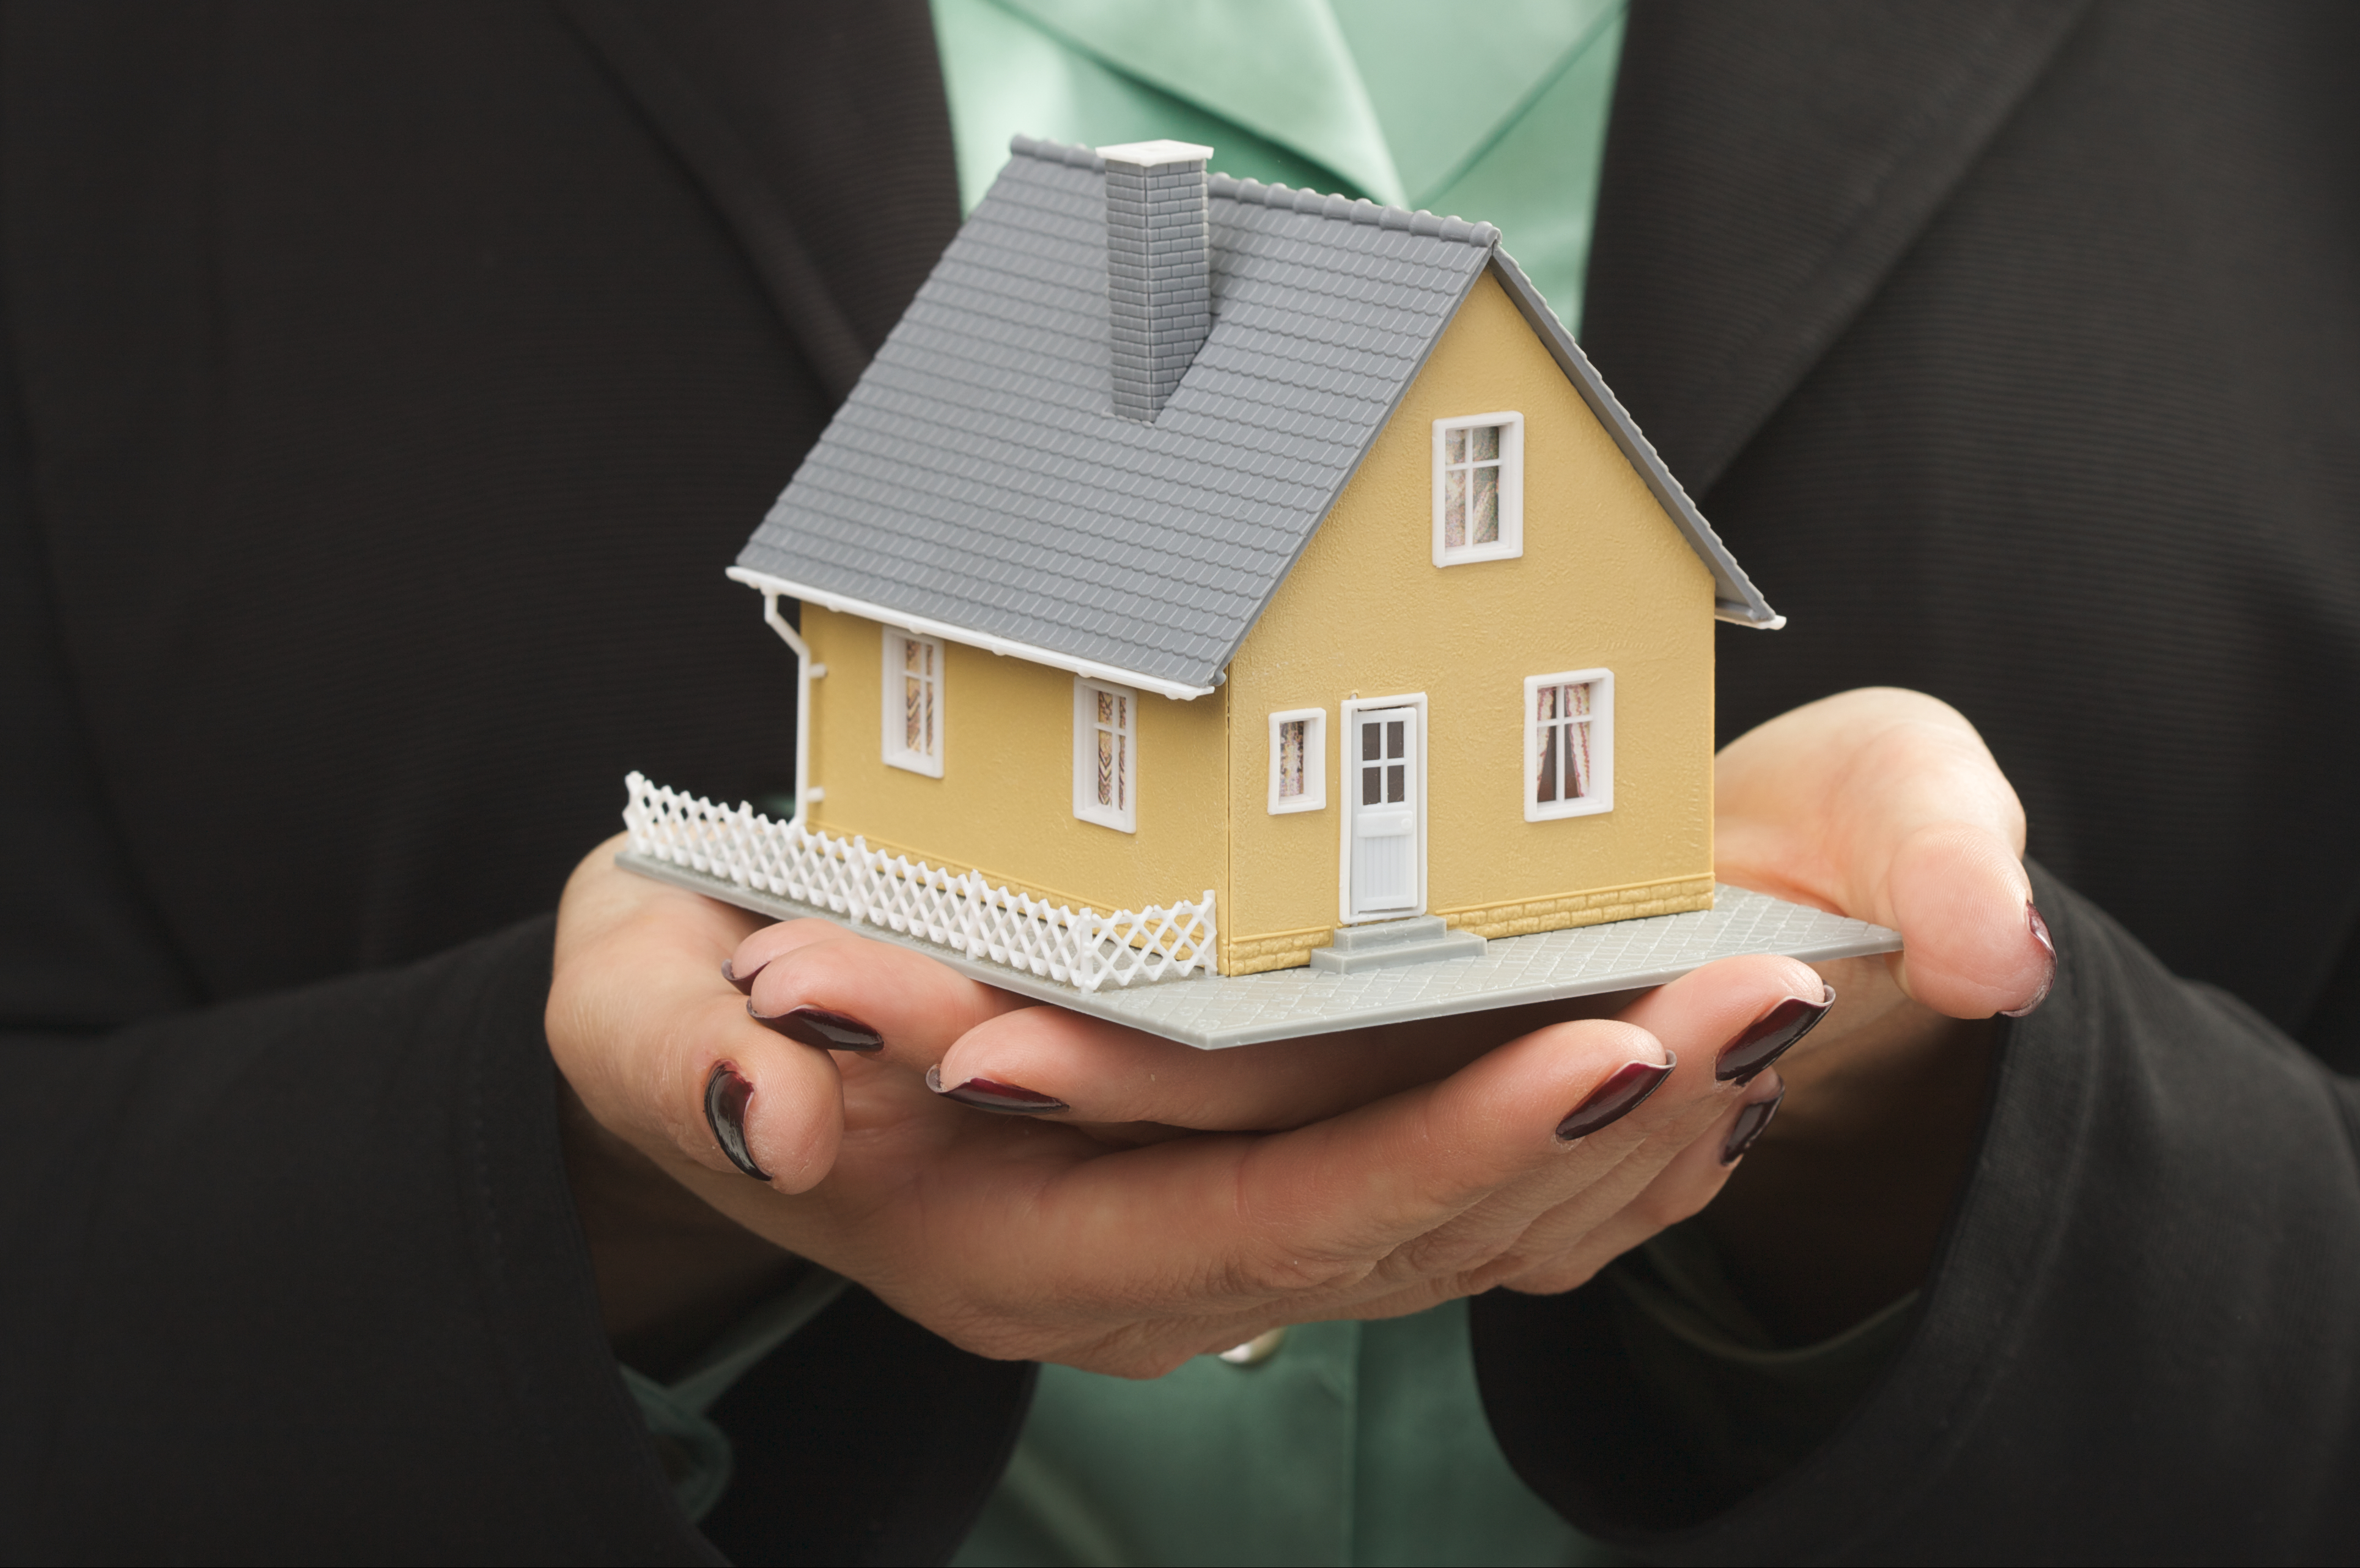 3 Tips for Showing Your Home Successfully